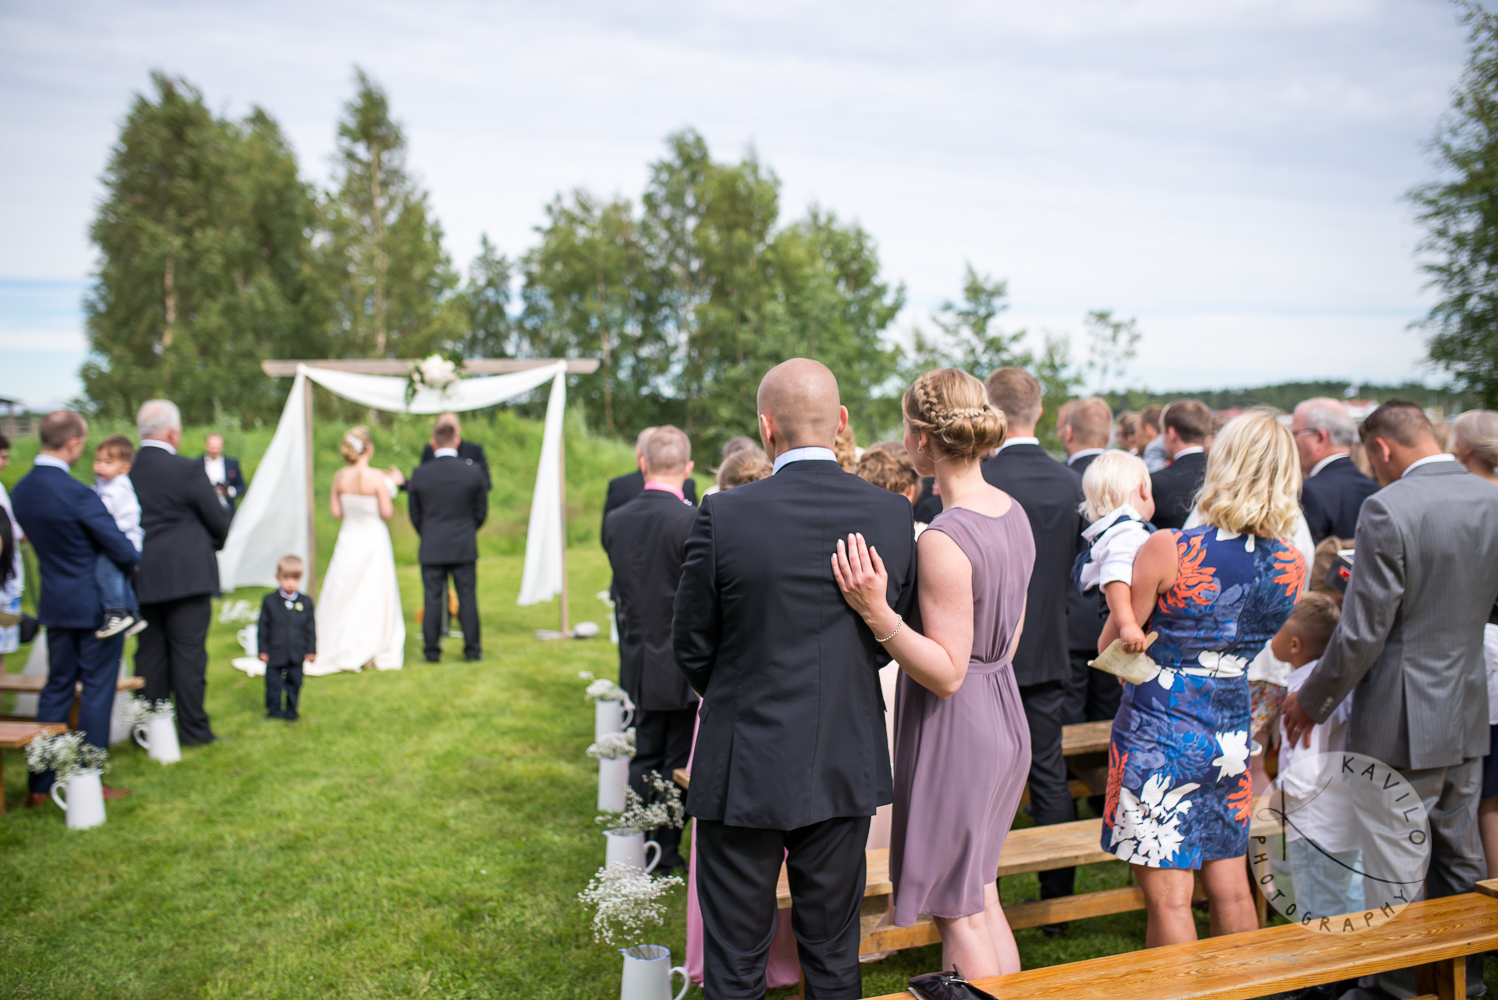 Helena + Staffan Watermark by Kavilo Photography-5.jpg